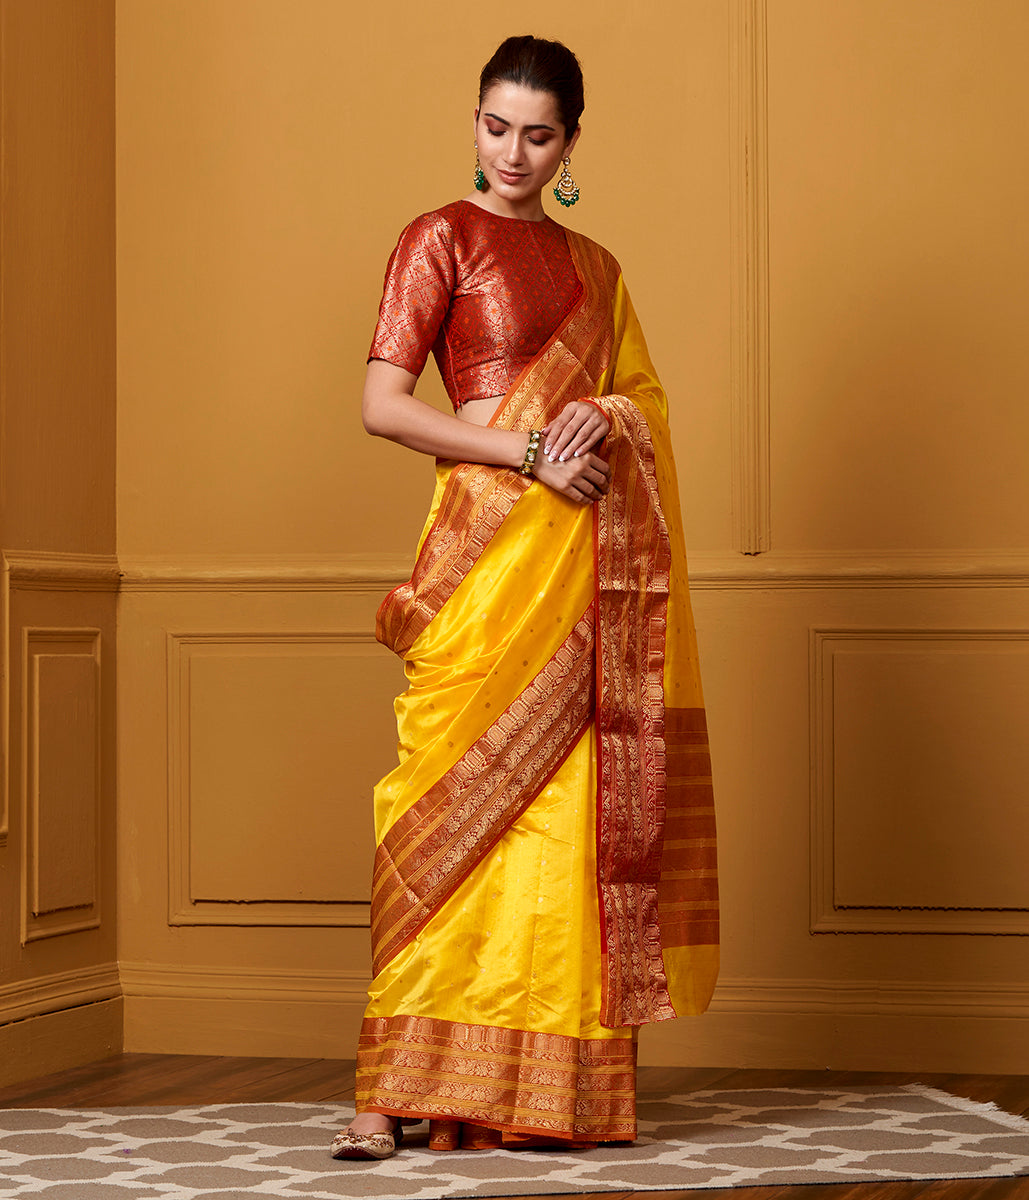 Handwoven Yellow and Red chanderi silk saree with intricate ek naliya weave